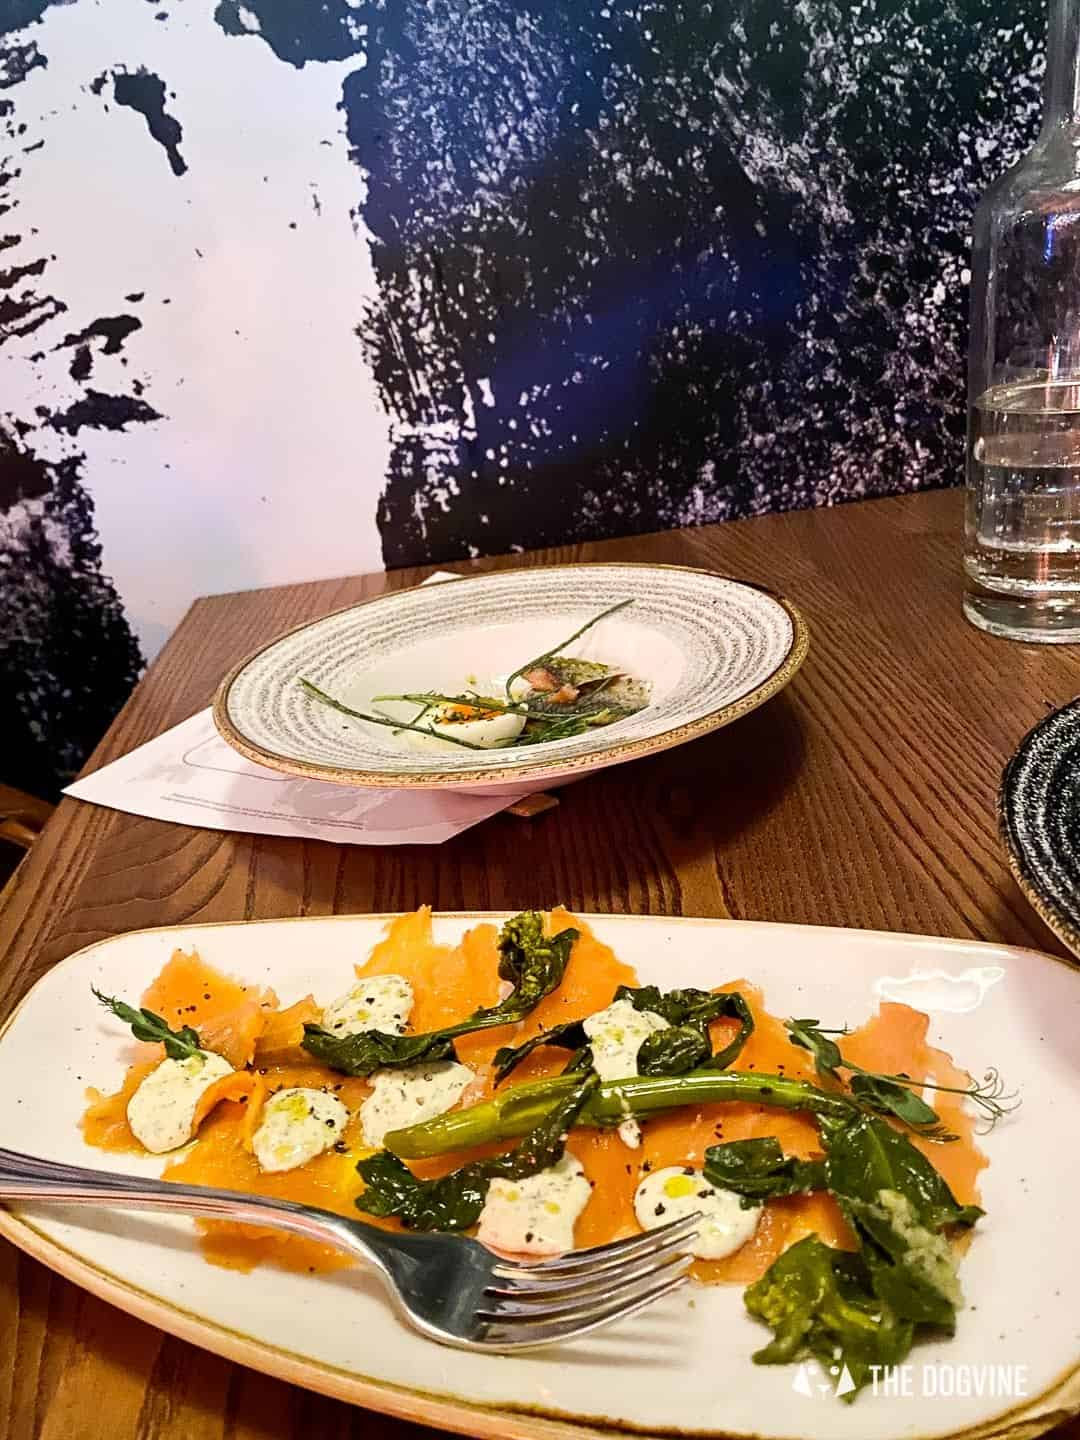 Cold Smoked Scottish Salmon with Pickled Greens and Horseradish Cream - The Melusine